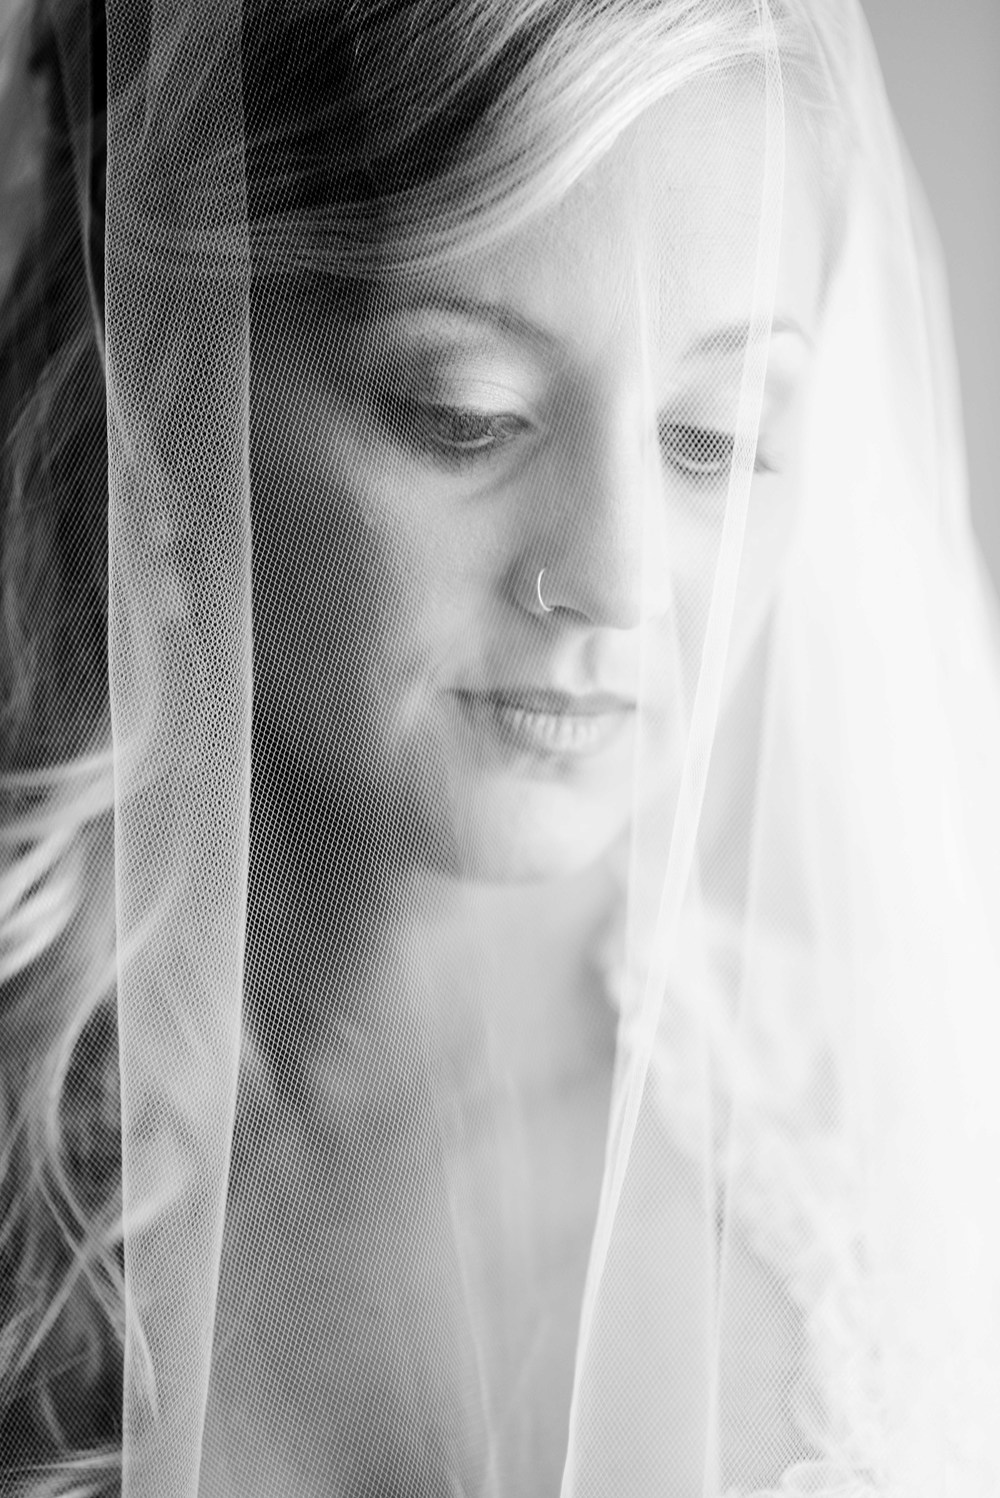 Anna's choice of a fingertip veil with lace edging perfectly suited her lace overlay satin bridal gown.